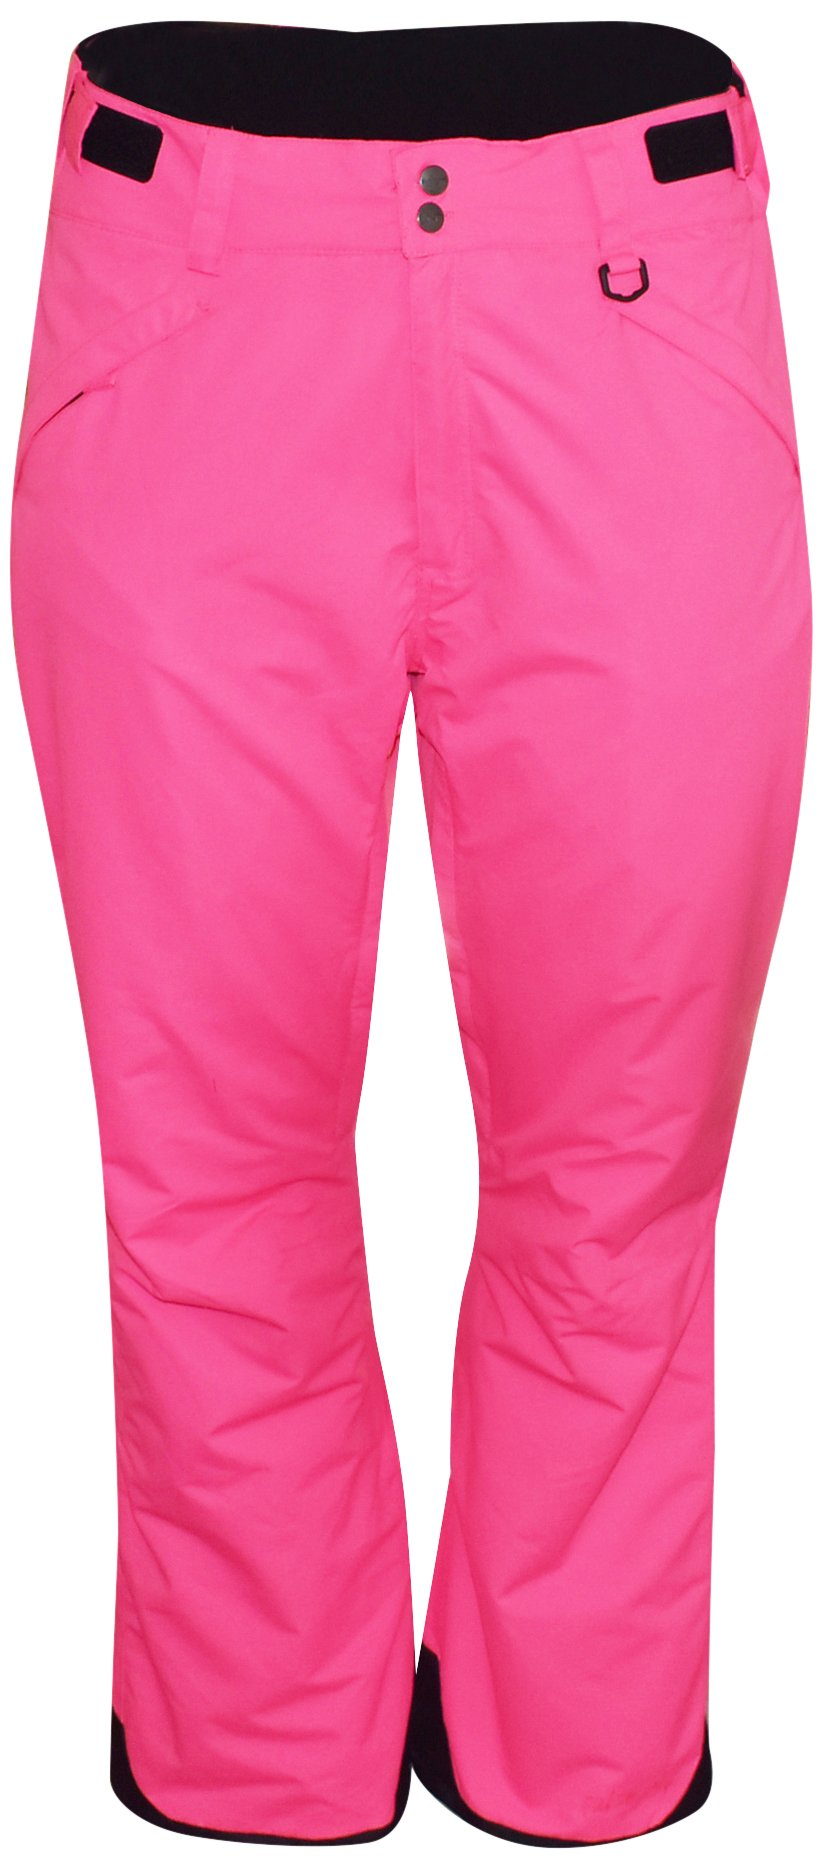 Pulse Women's Plus Size Technical Insulated Snow Pants (4X, Hot Pink)